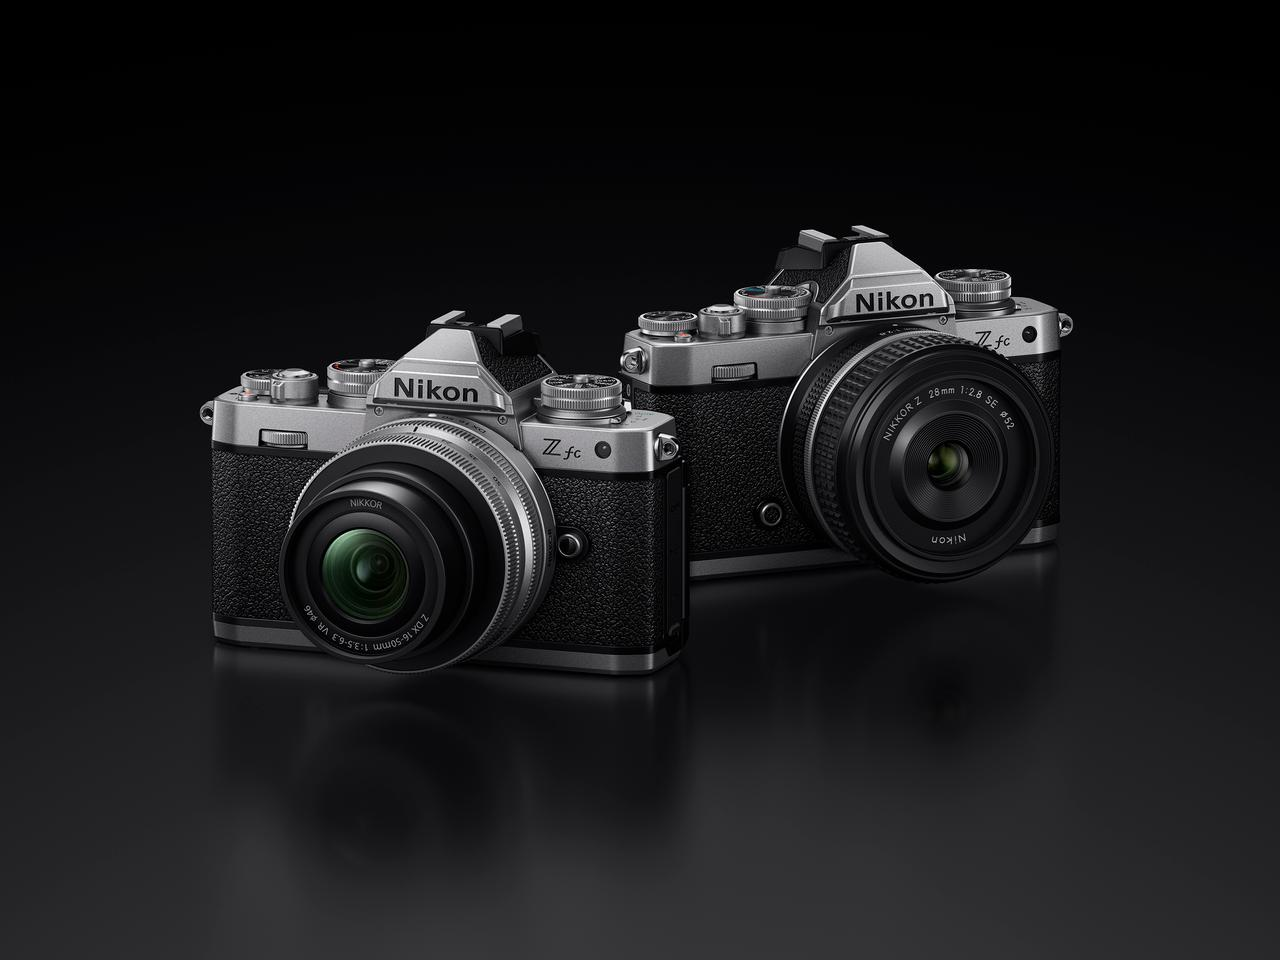 The design of the Z fc DX-format mirrorless camera was inspired by Nikon's interchangeable lens, 35-mm film, single-lens reflex camera